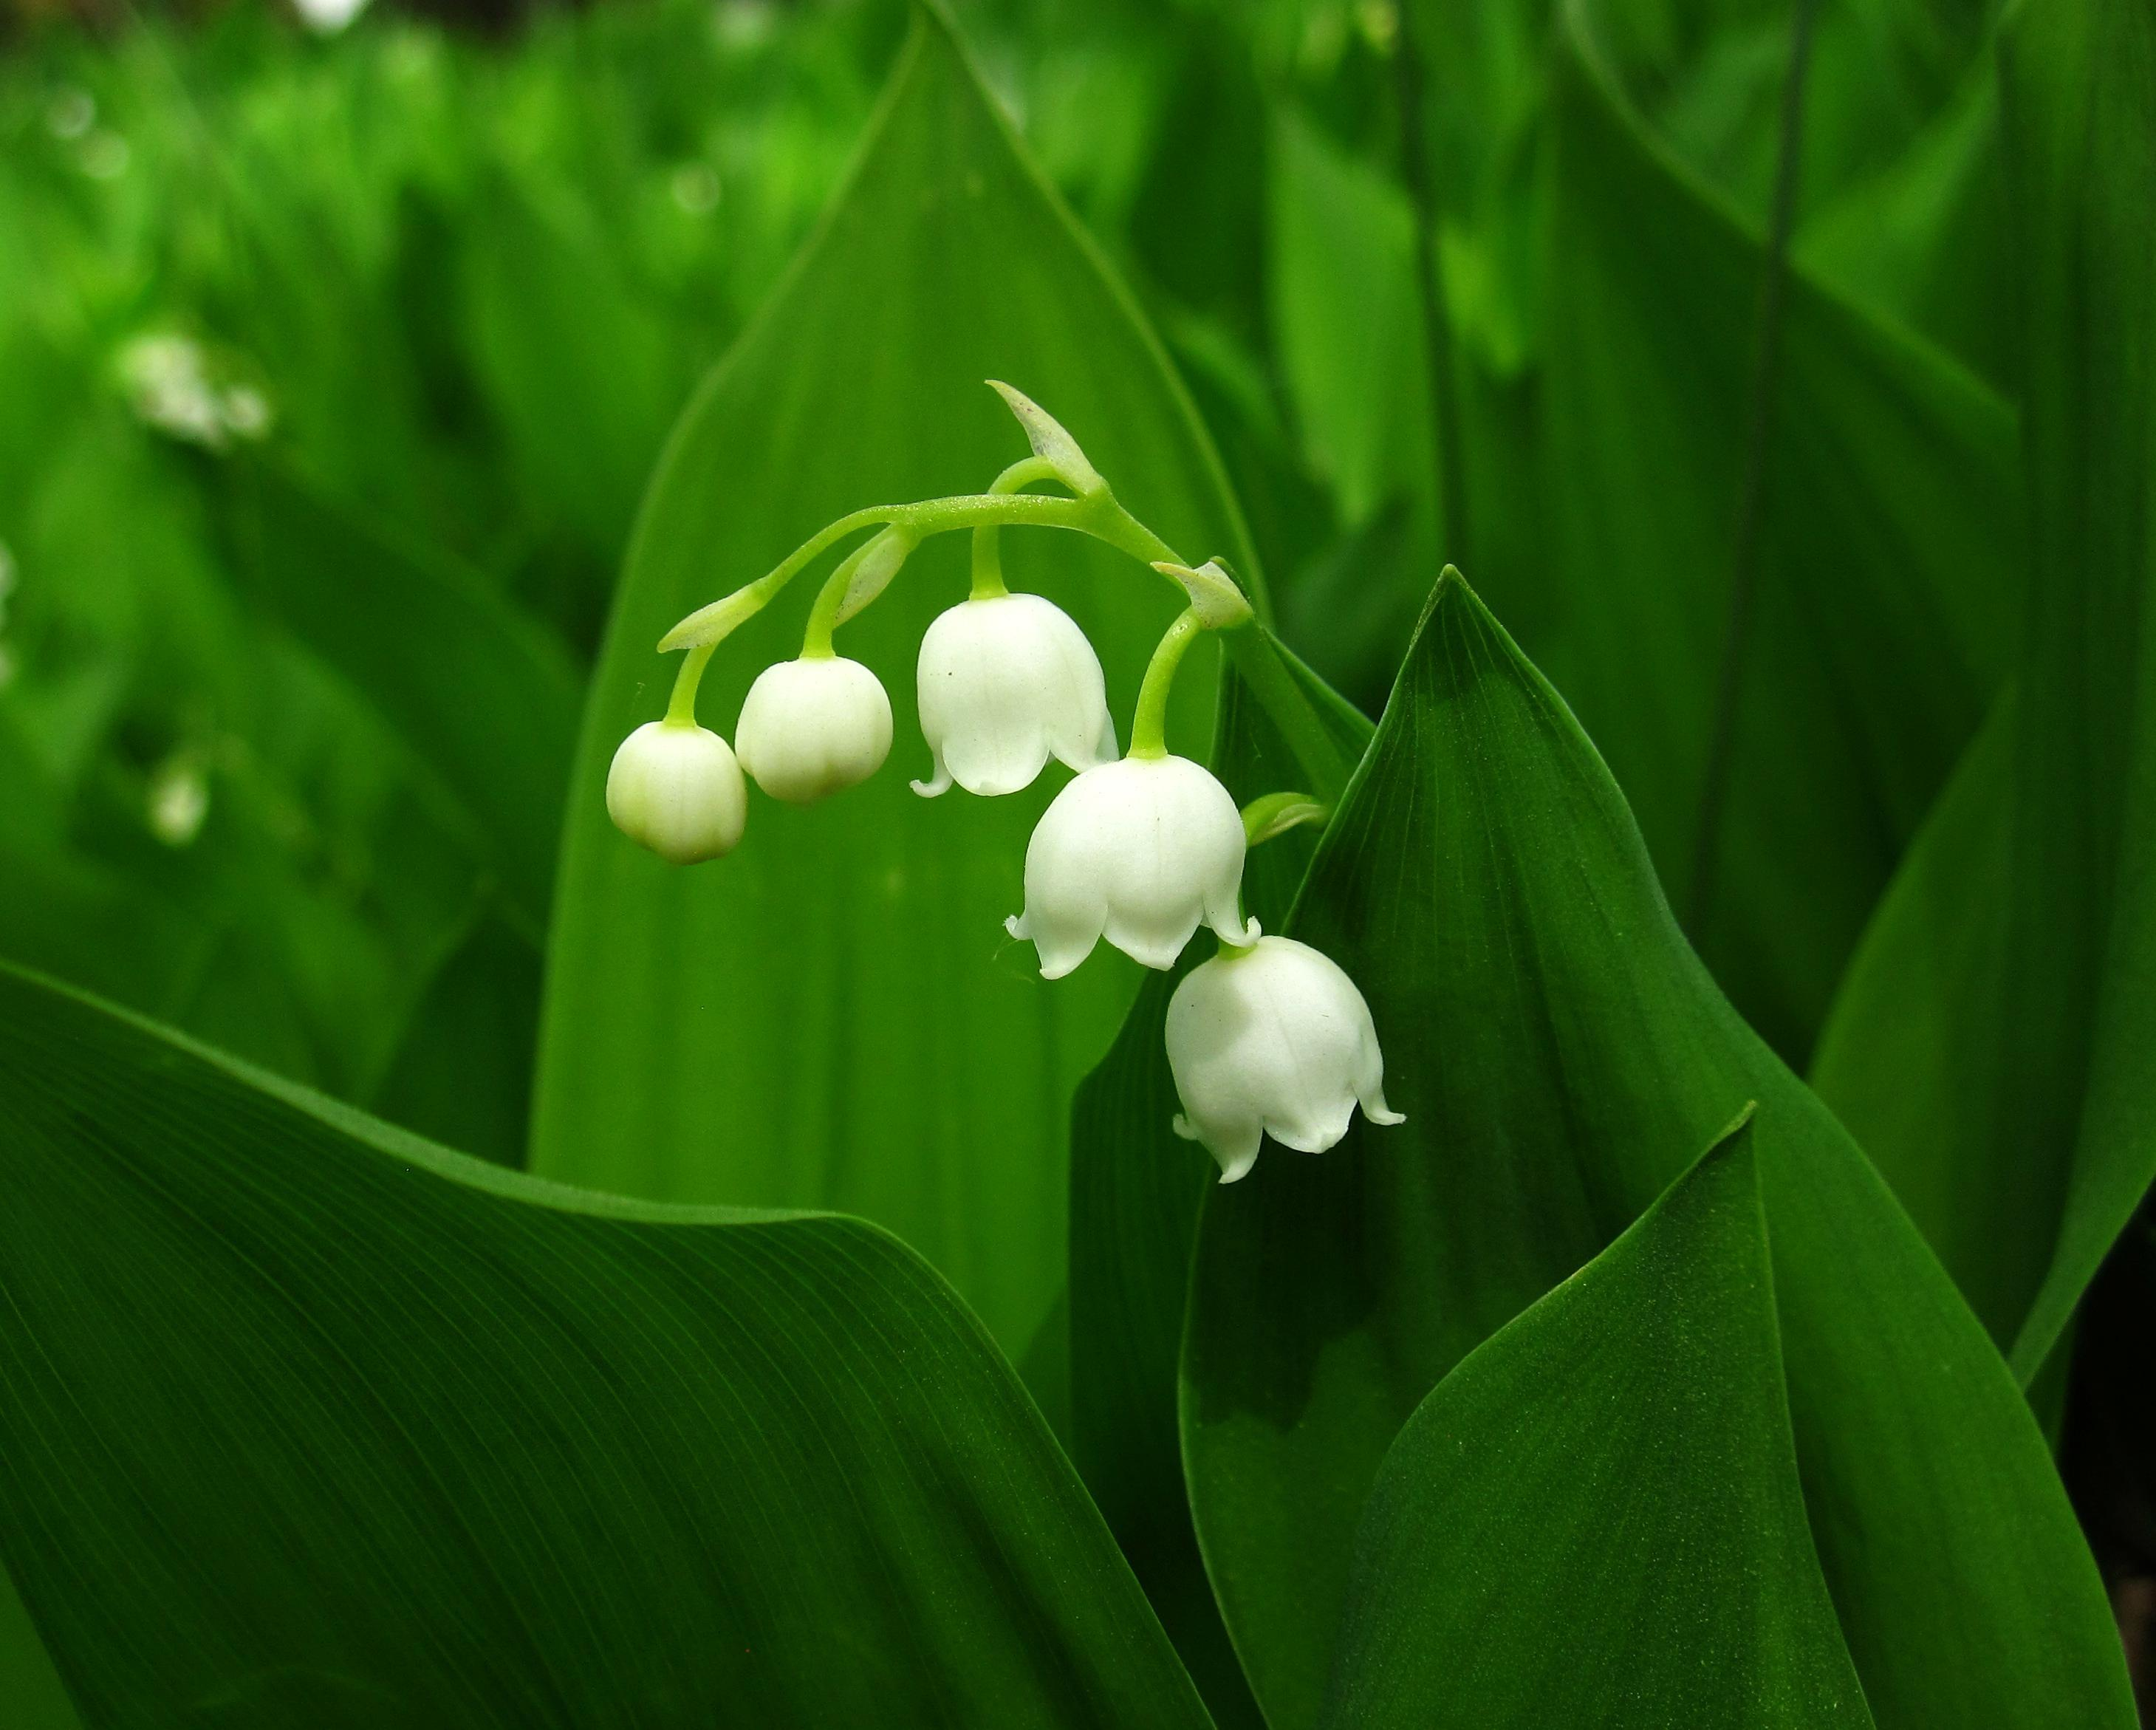 Image of Lily-of-the-valley